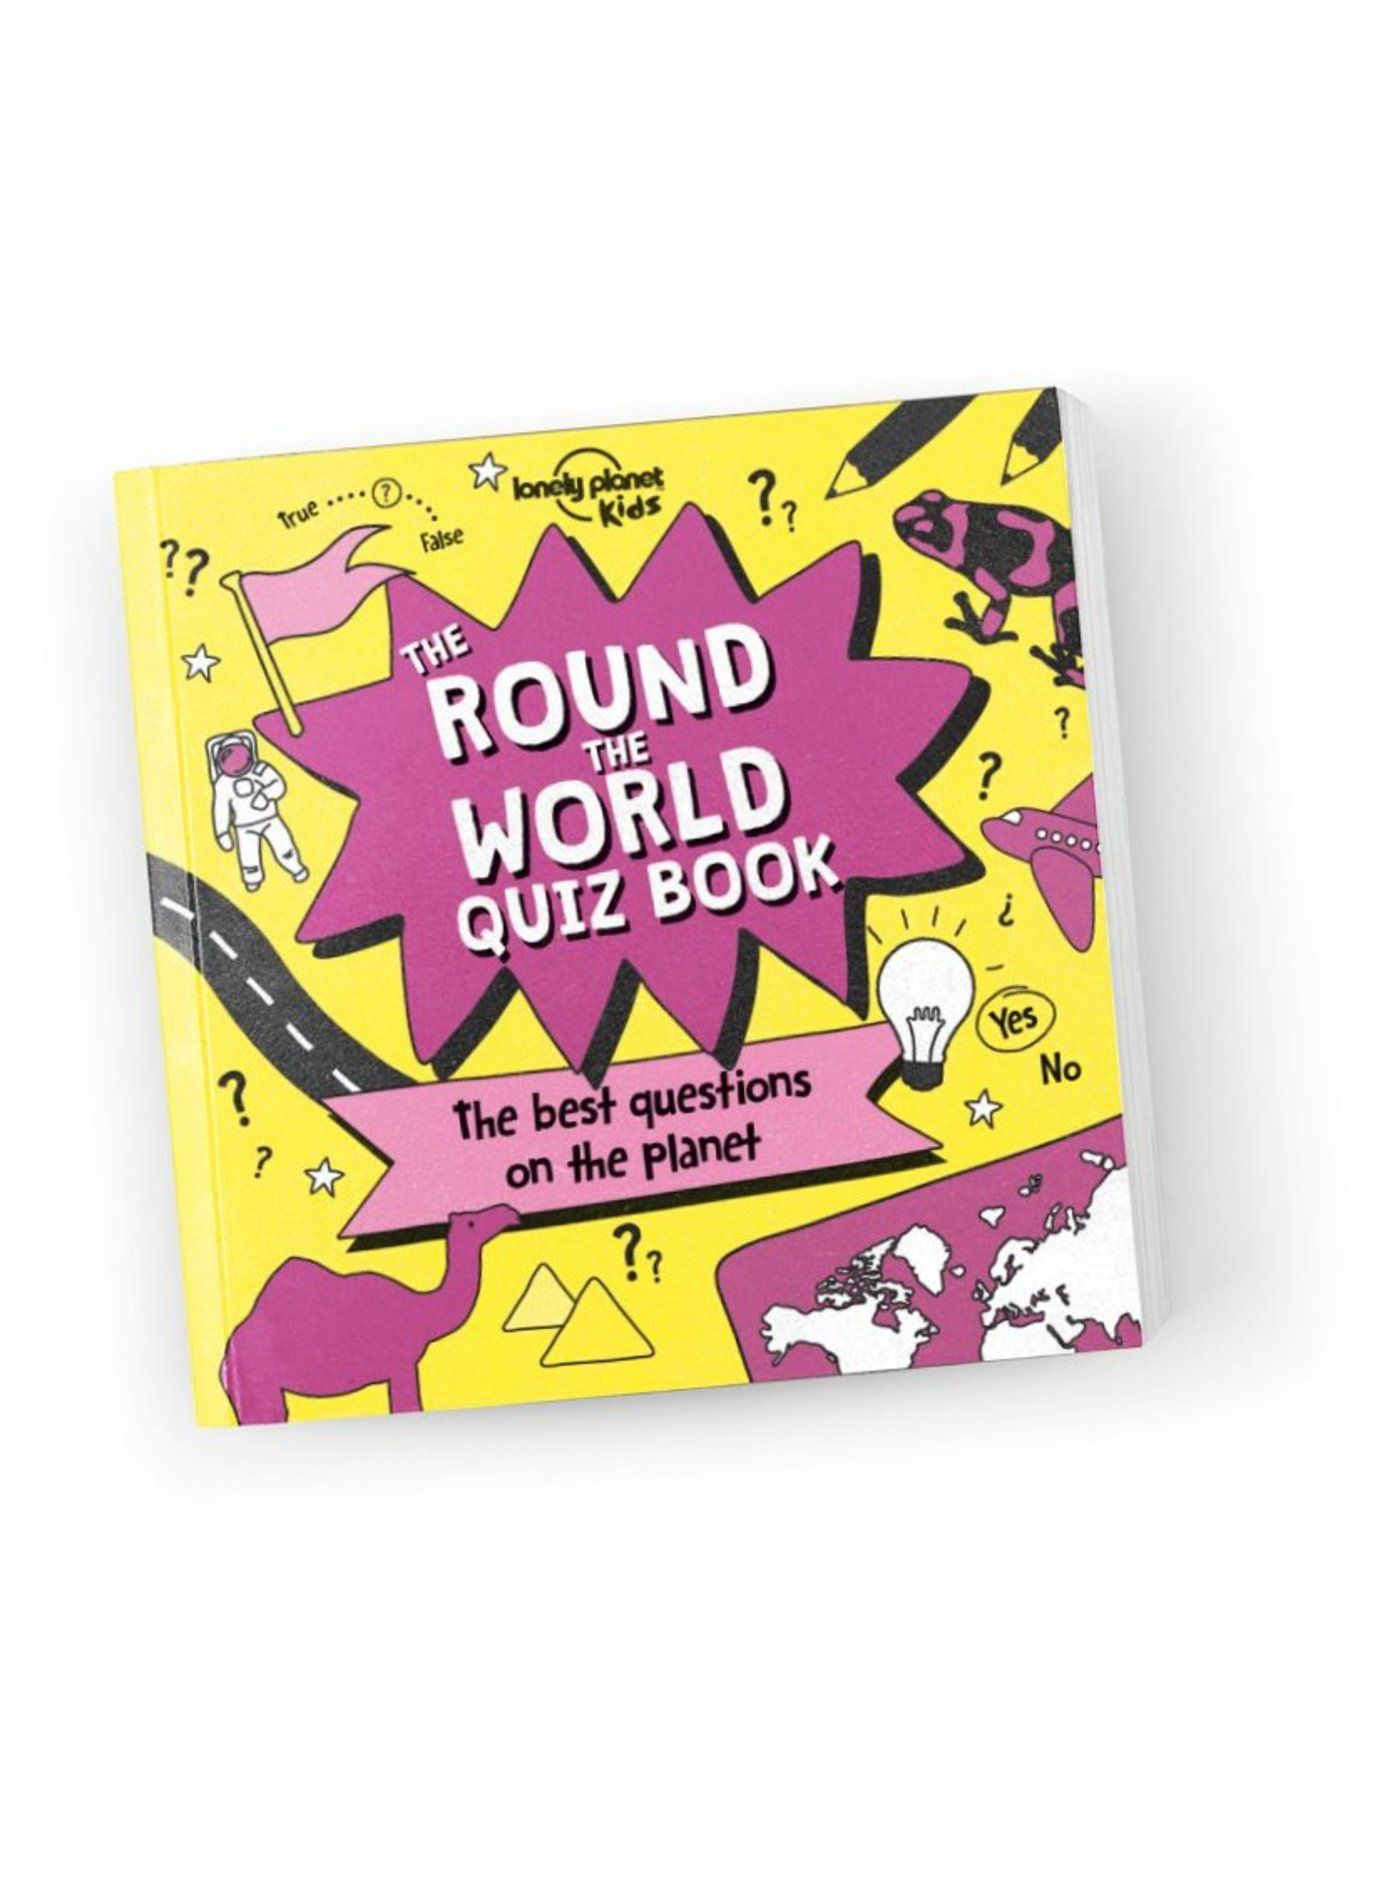 The Round the World Quiz Book